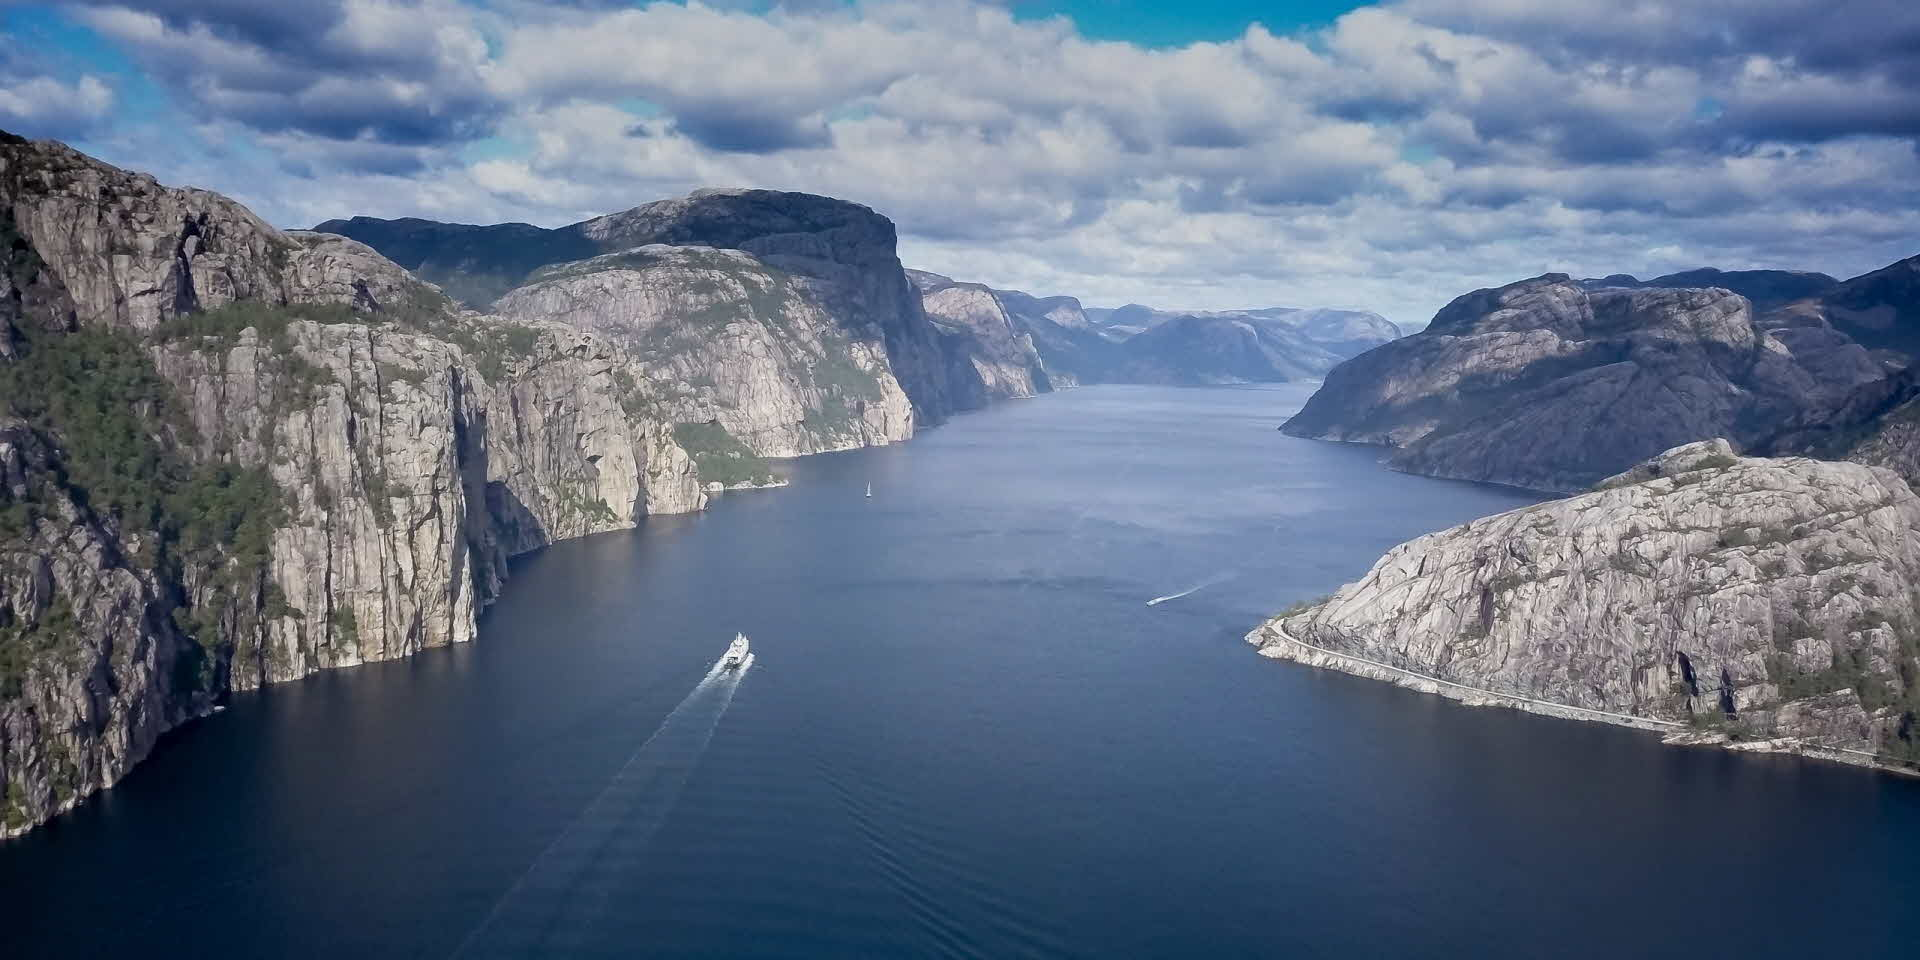 Fjord Cruise Lysefjord tourist ferry sail through the dramatic rocky landscape seen from birds eye perspective